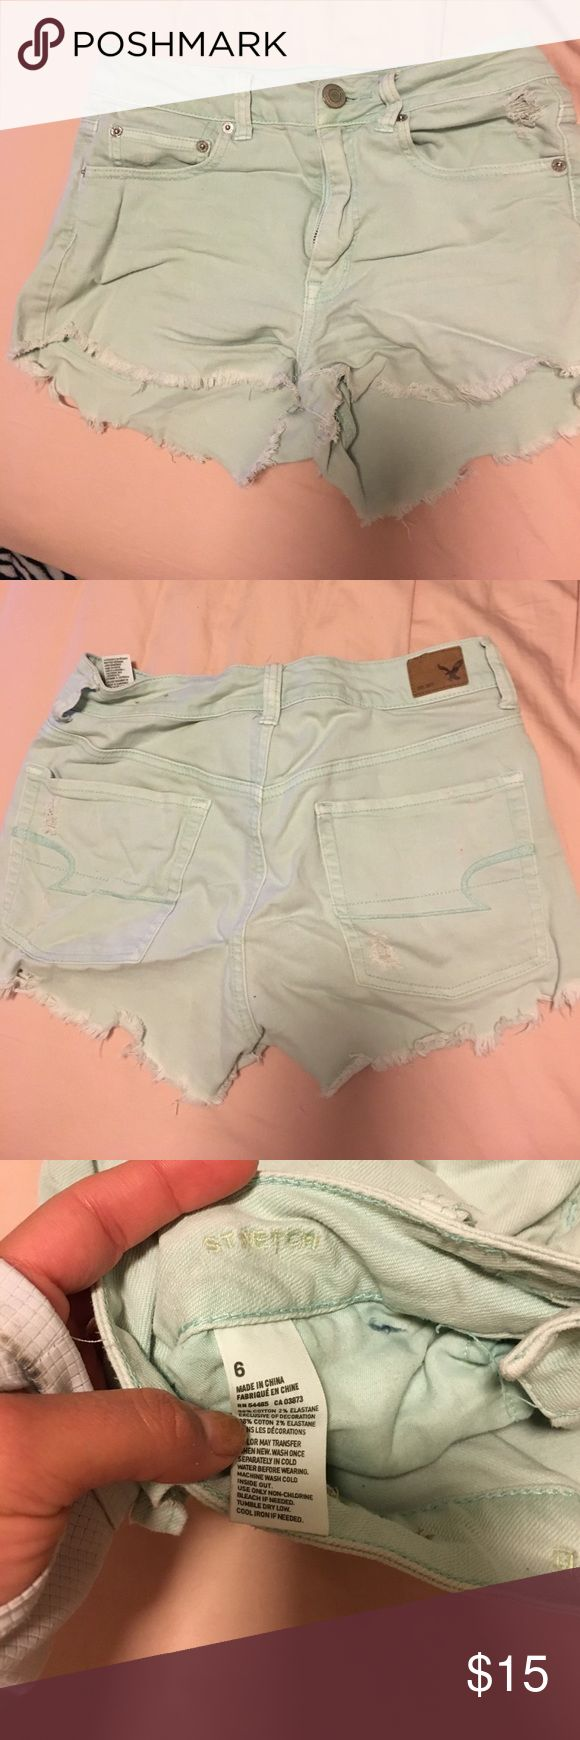 high waisted shorts light blue high waisted jean shorts baby blue color American Eagle Outfitters Shorts Jean Shorts